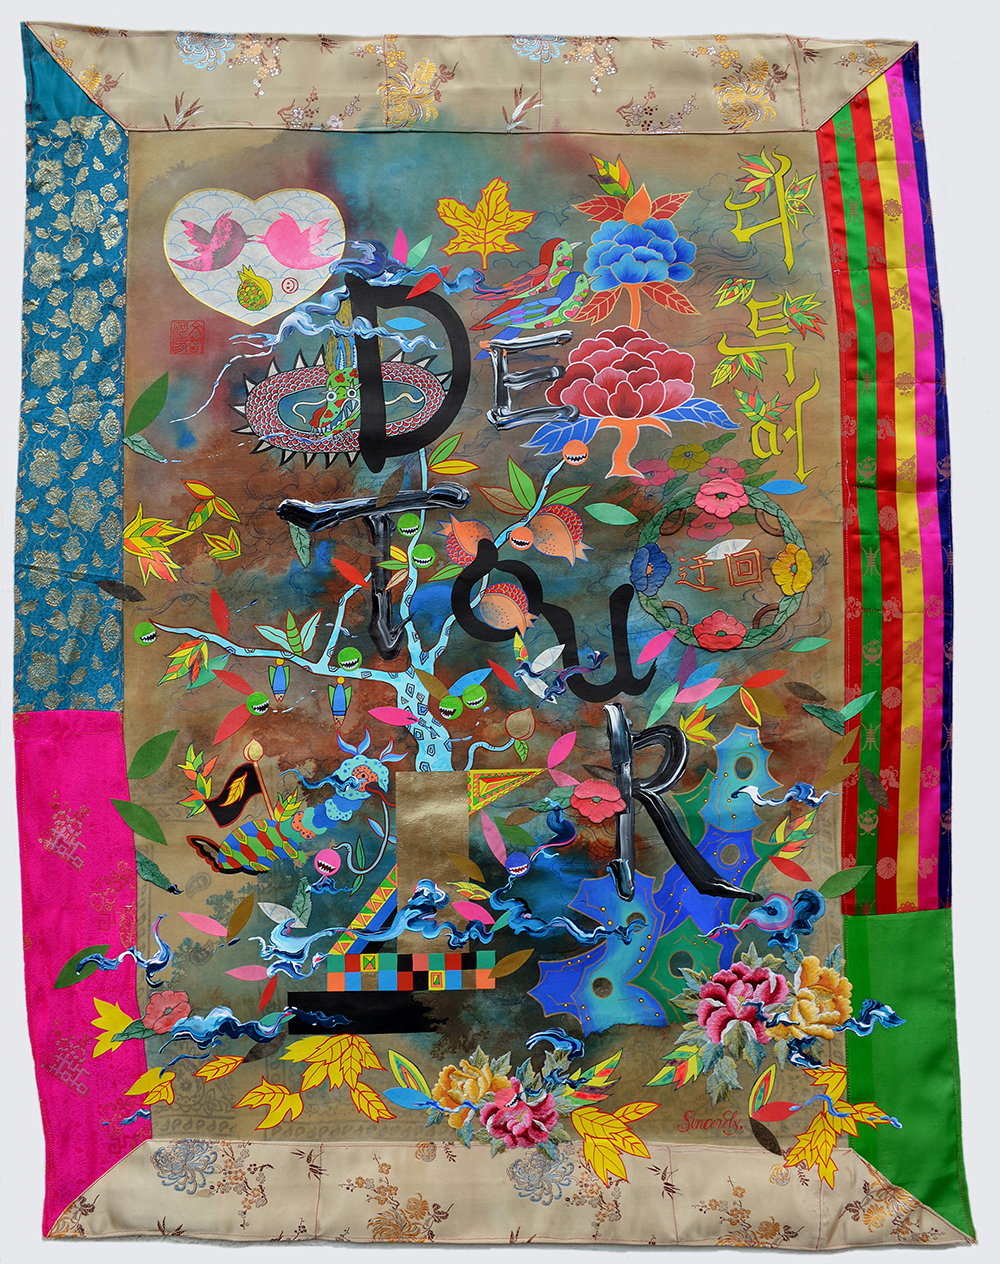 "Jiha Moon  Detour  Ink and acrylic, fabric, Hanji paper, embroidery patches on Hanji, quilted border 40.25"" x 30"" 2012"